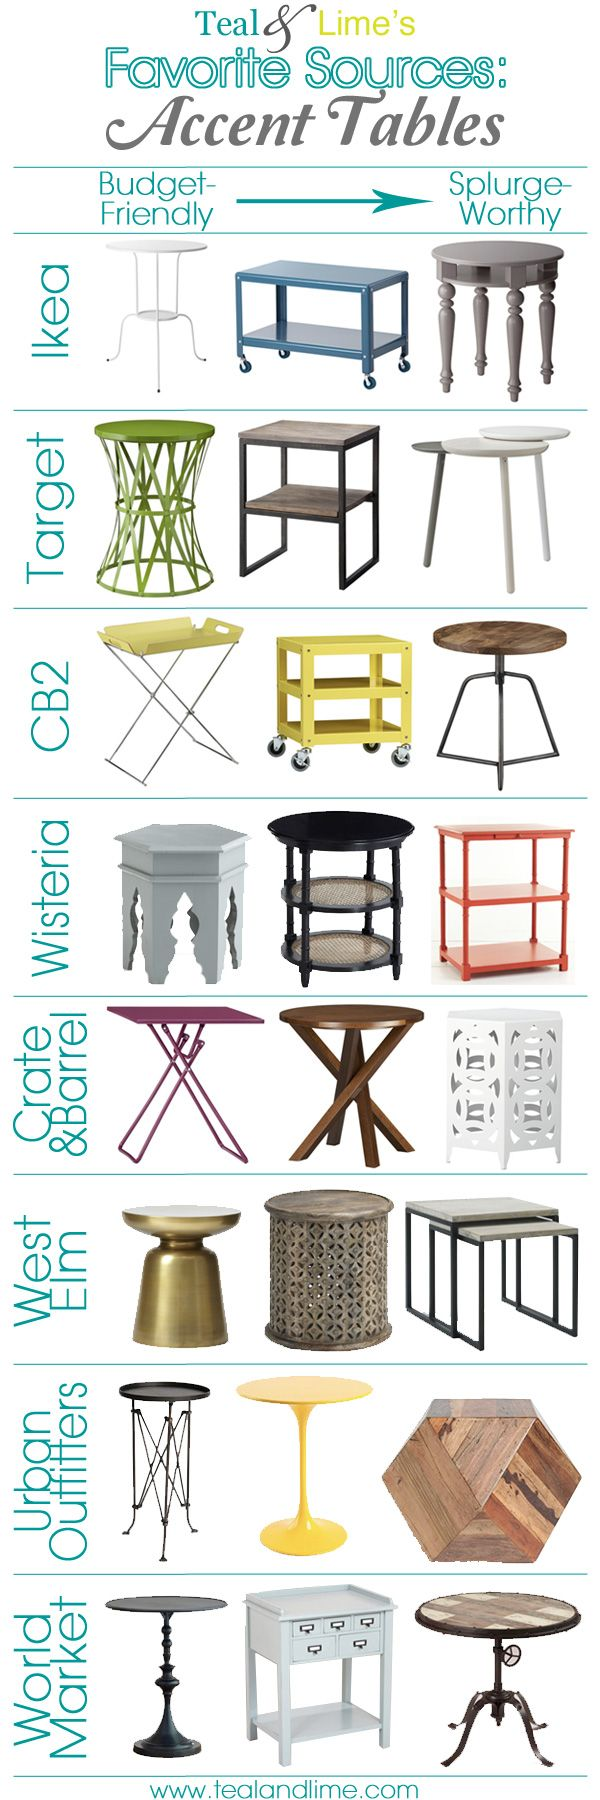 favorite sources for accent tables